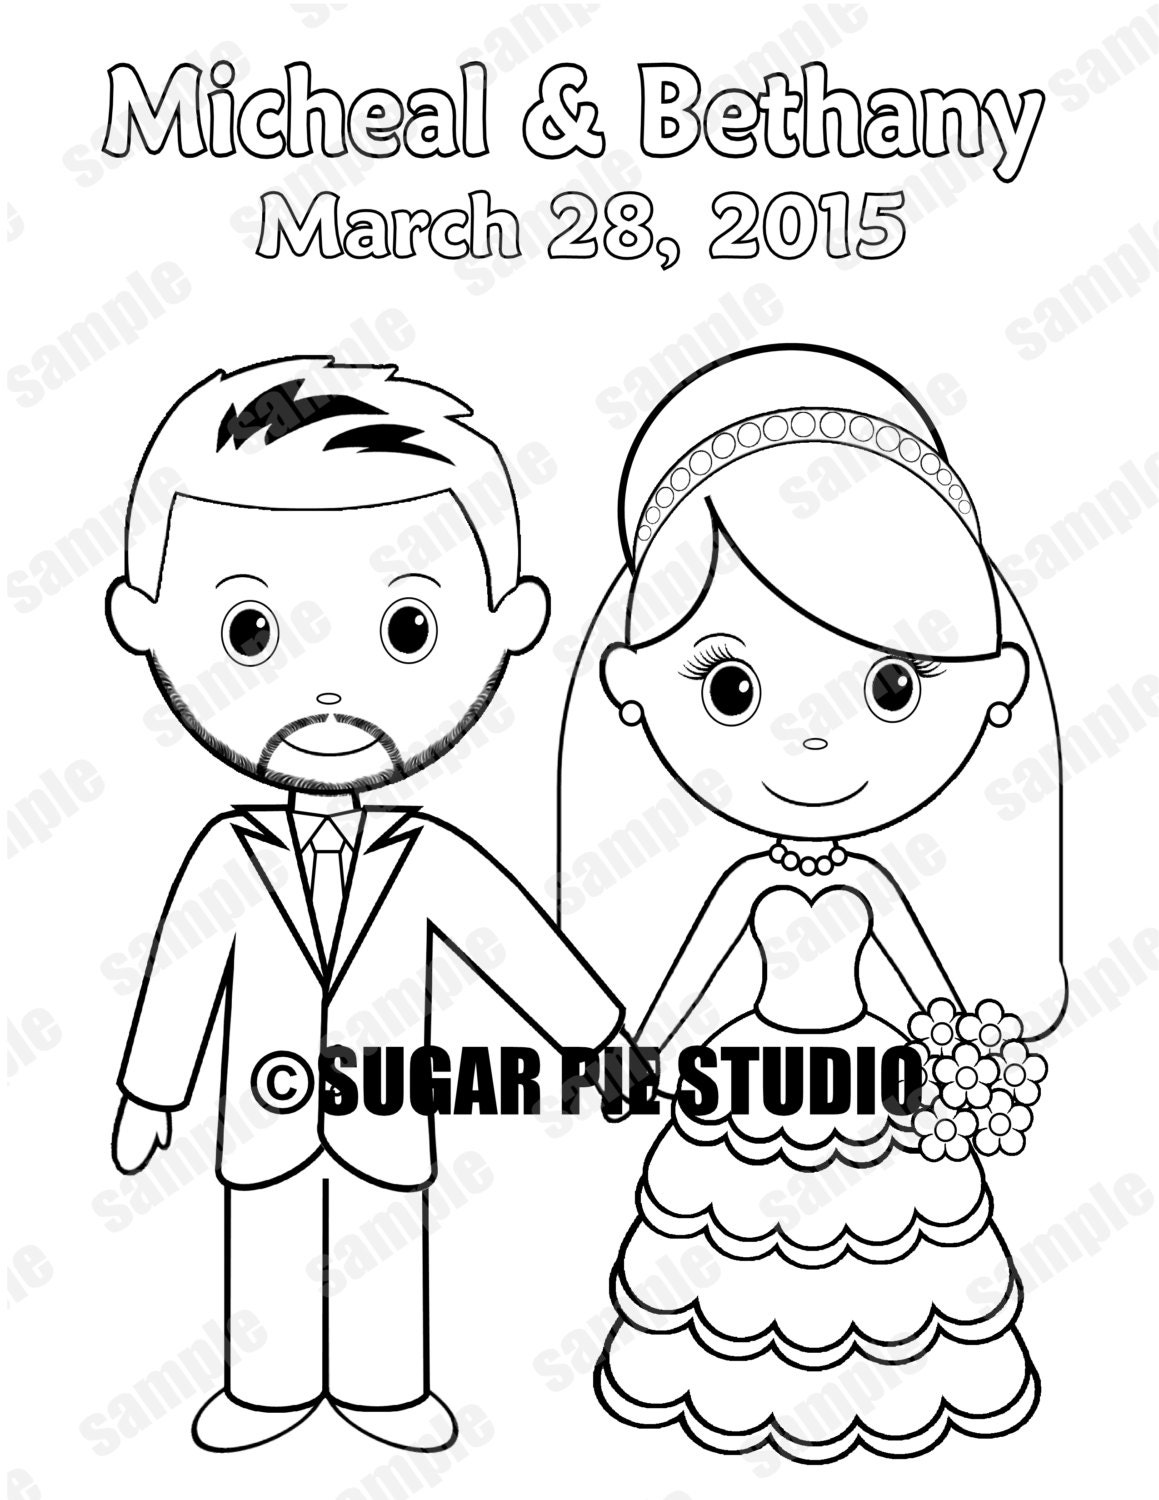 Wedding Coloring Pages Pdf : Personalized printable bride groom wedding party favor